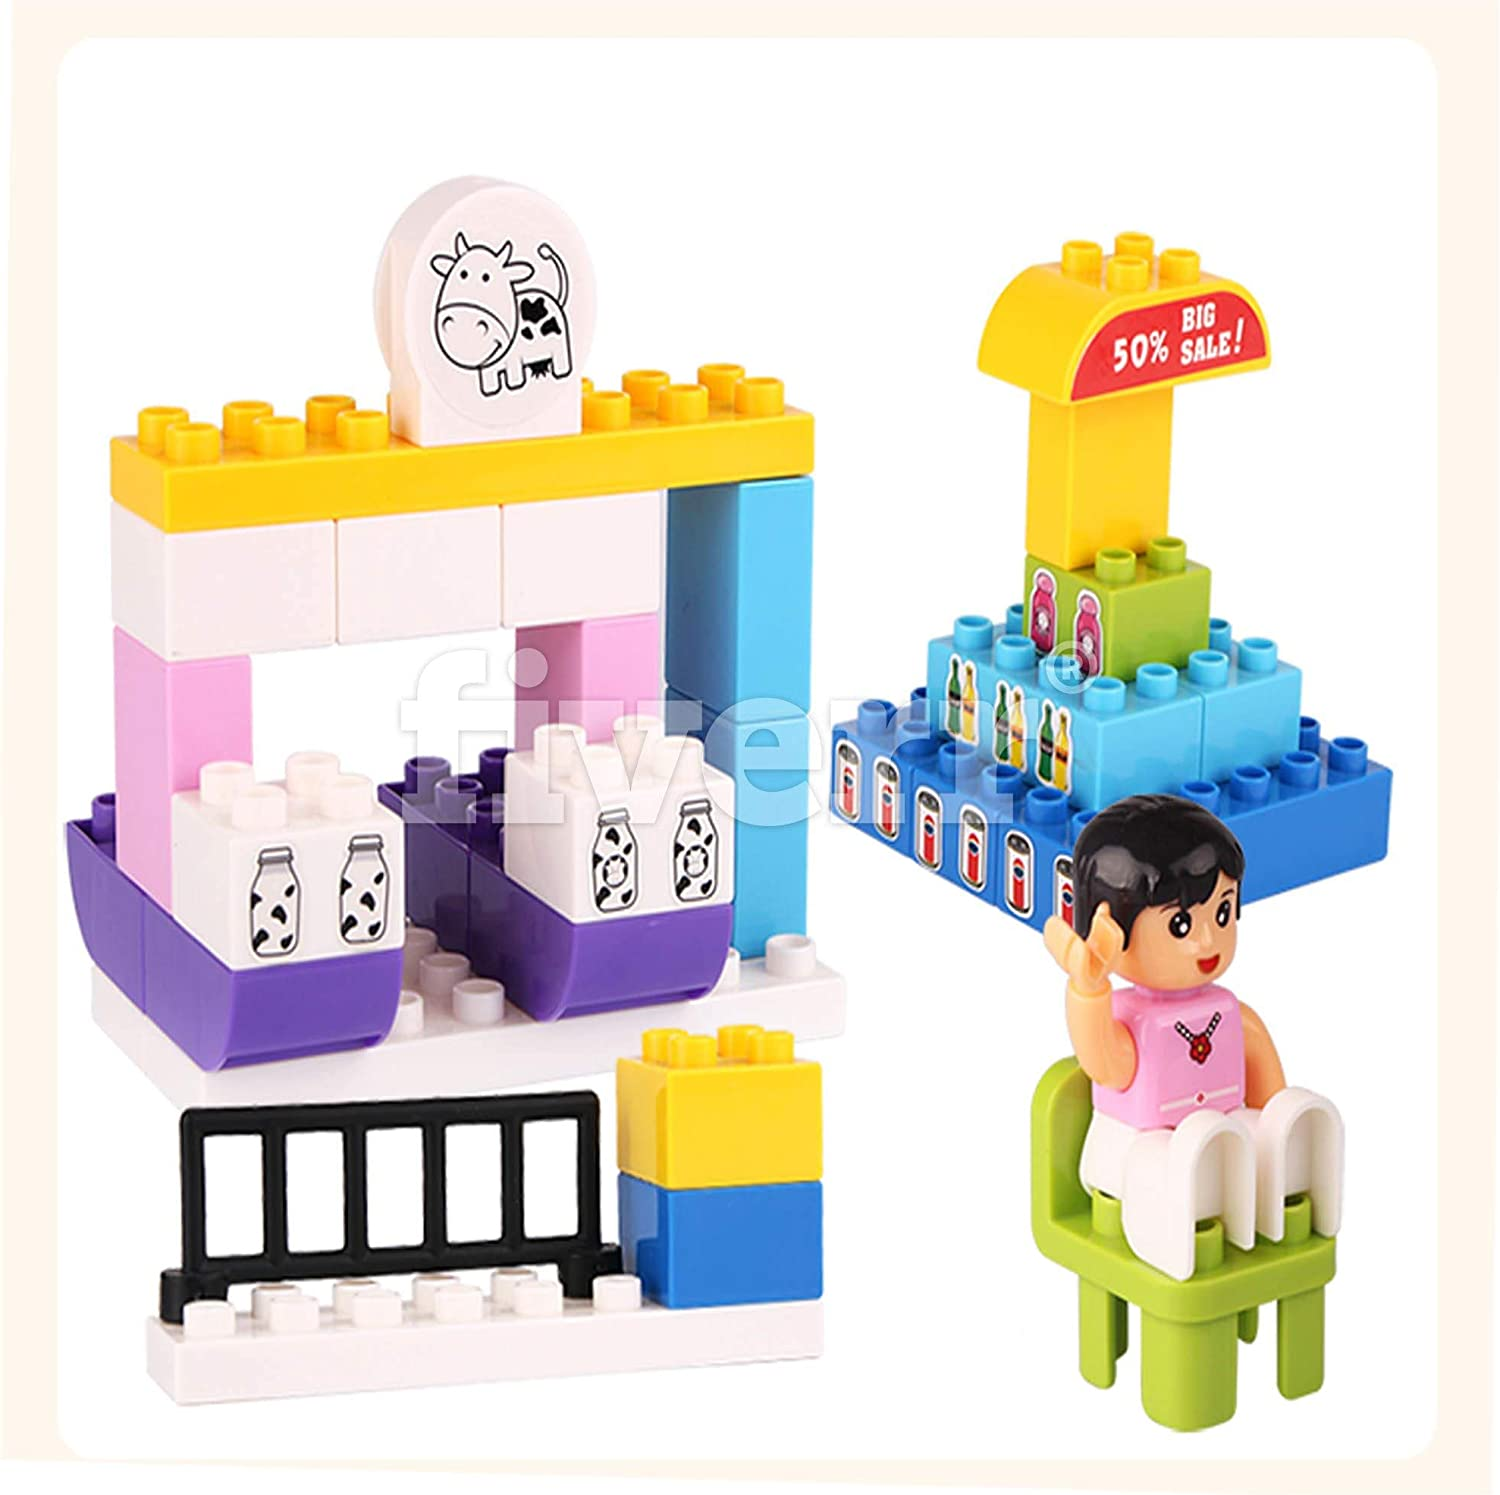 Ele Toys Educational STEM Large Childrens Building Blocks for Preschool and Toddlers Includes Stickers and Story on Feelings Compatible Building Bricks Construction Set